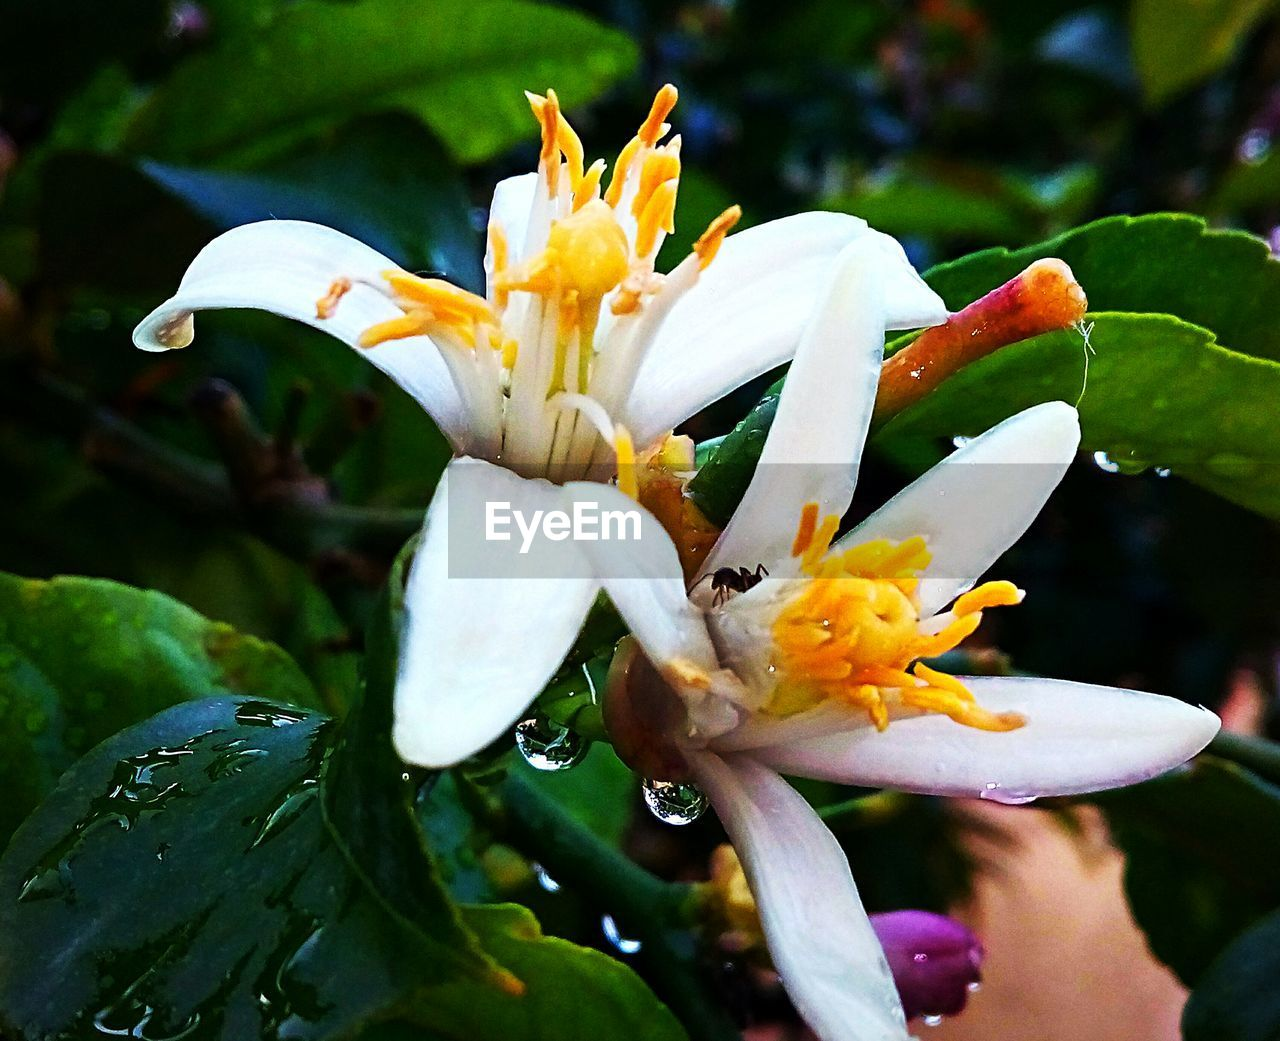 flowering plant, flower, vulnerability, fragility, plant, petal, growth, beauty in nature, freshness, inflorescence, close-up, flower head, focus on foreground, pollen, nature, day, water, no people, wet, outdoors, raindrop